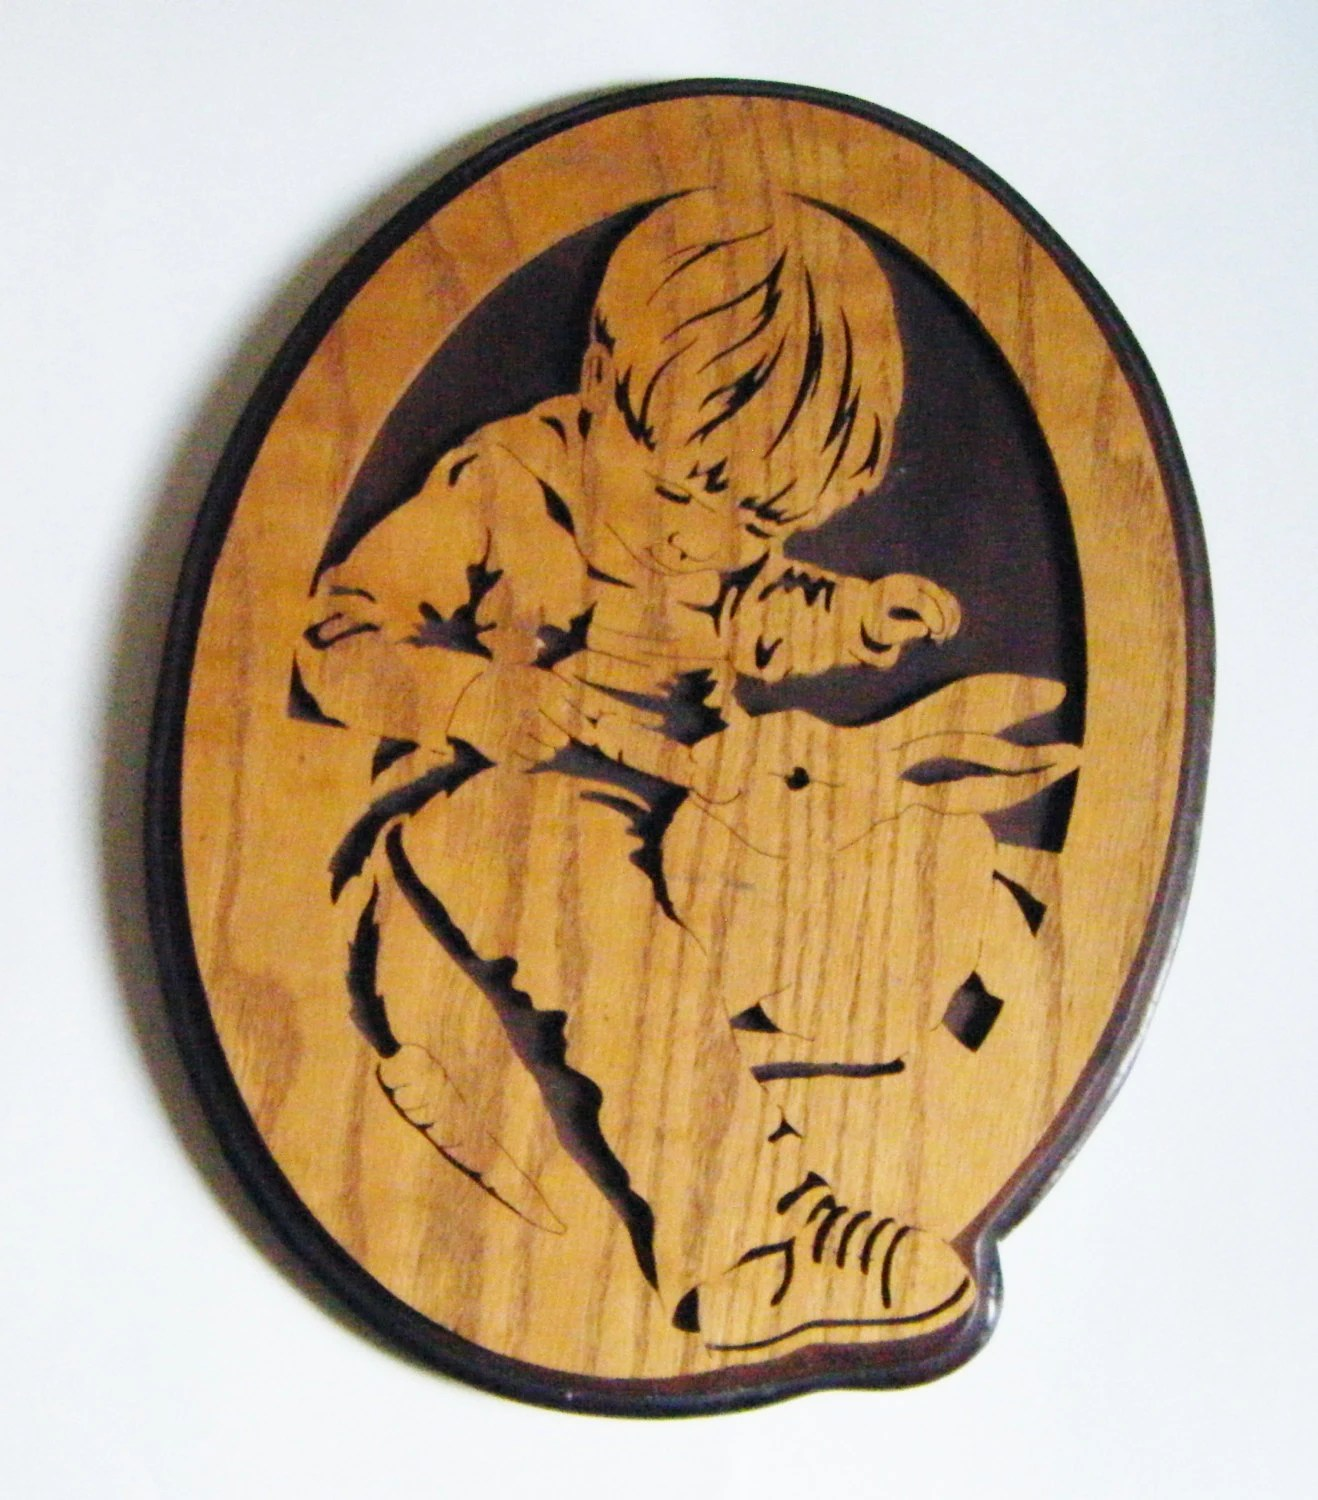 Carved Wood Wall Art Australia Intricately Carved Wood Wall Art Little Boy Feeding A